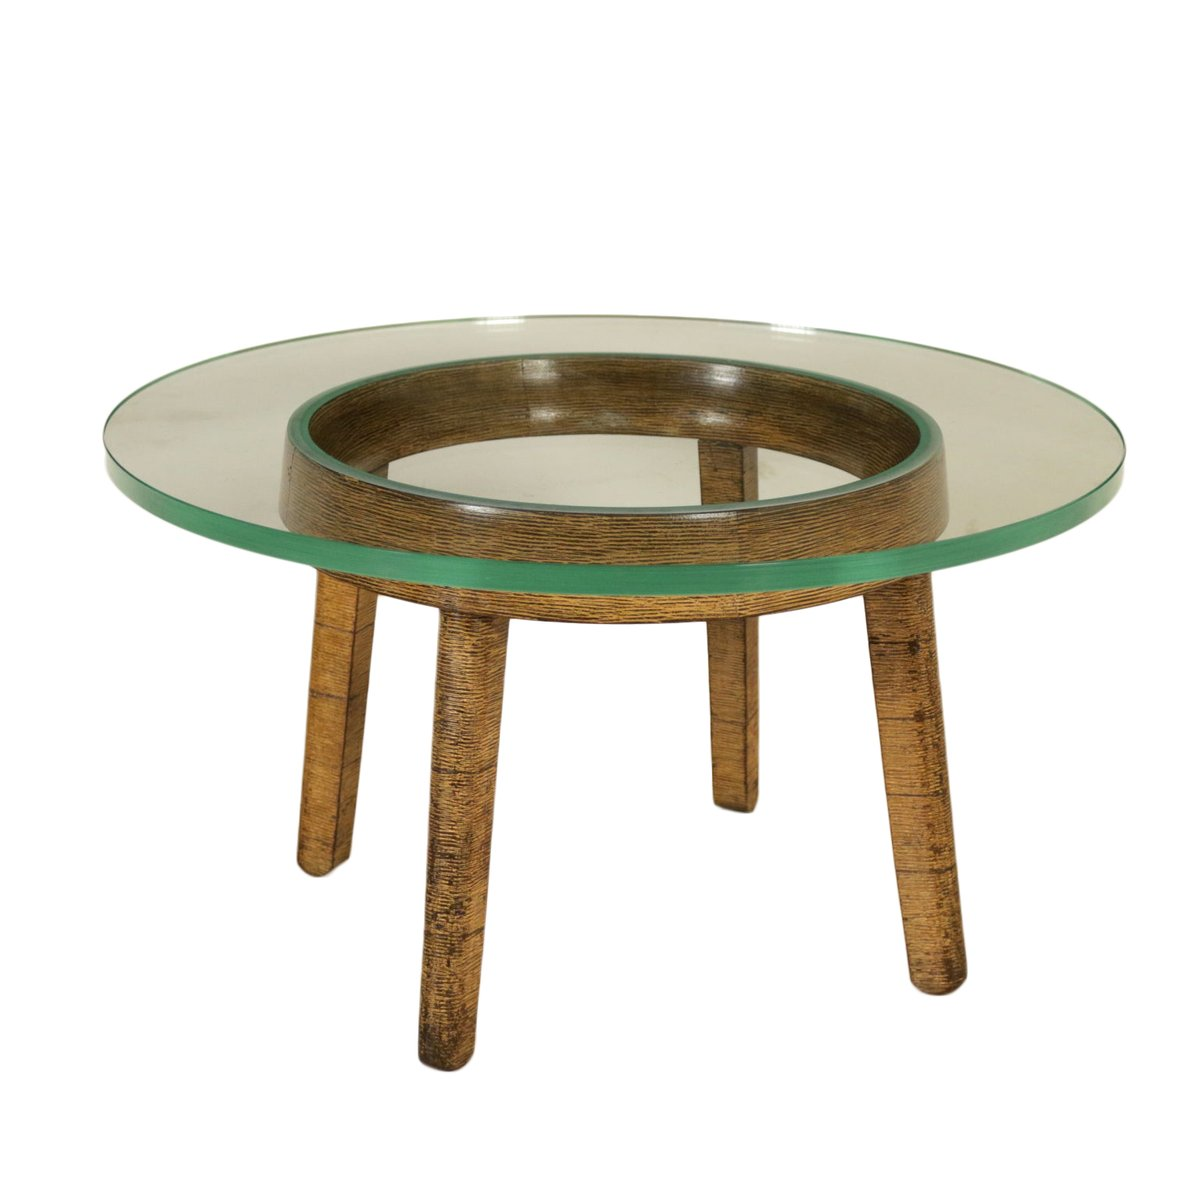 Vintage Coffee Table In Decorative Wood & Glass For Sale